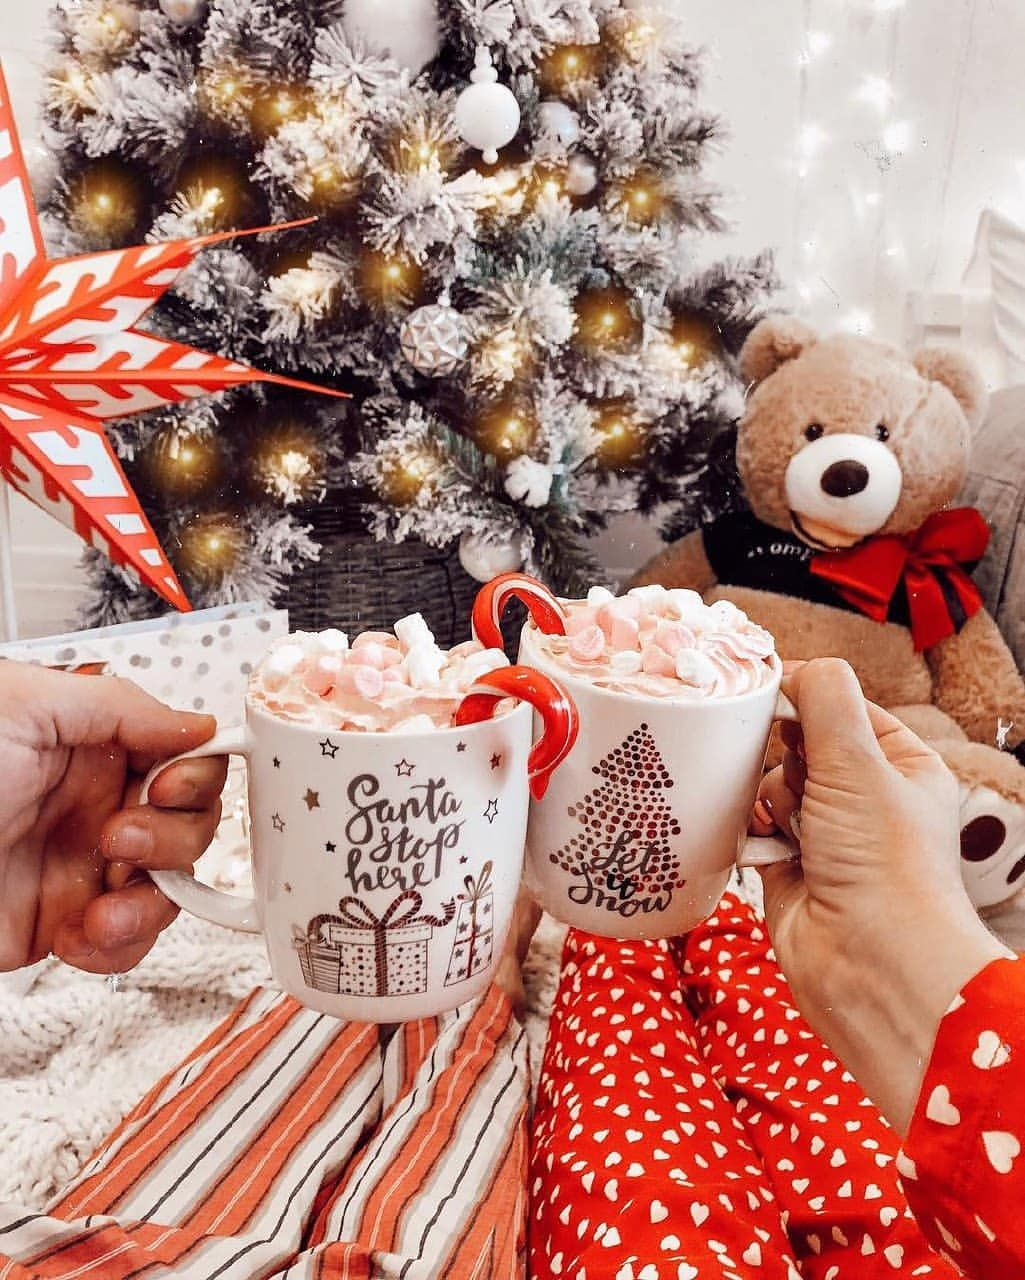 Cozy Morning Tag Your Bestie Use Fashion Stylez To Be Featured Follow Fashion Stylez For Christmas Mood Christmas Christmas Tumblr